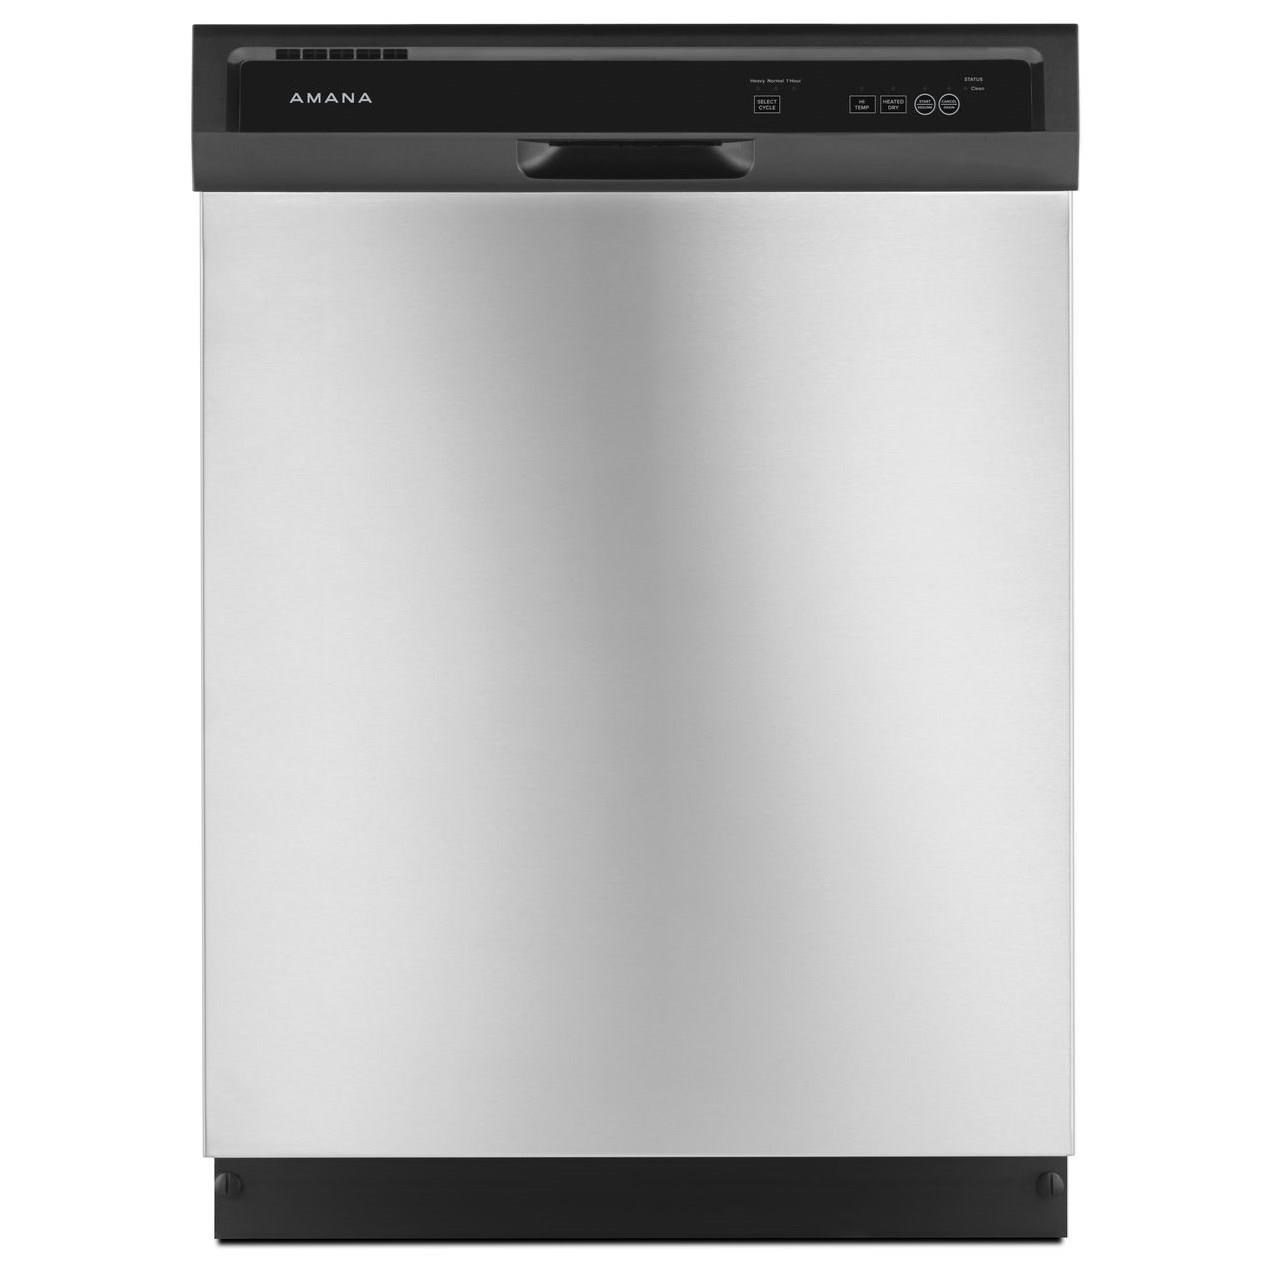 Amana Built-In Dishwashers Dishwasher with Triple Filter Wash System - Item Number: ADB1400AGS